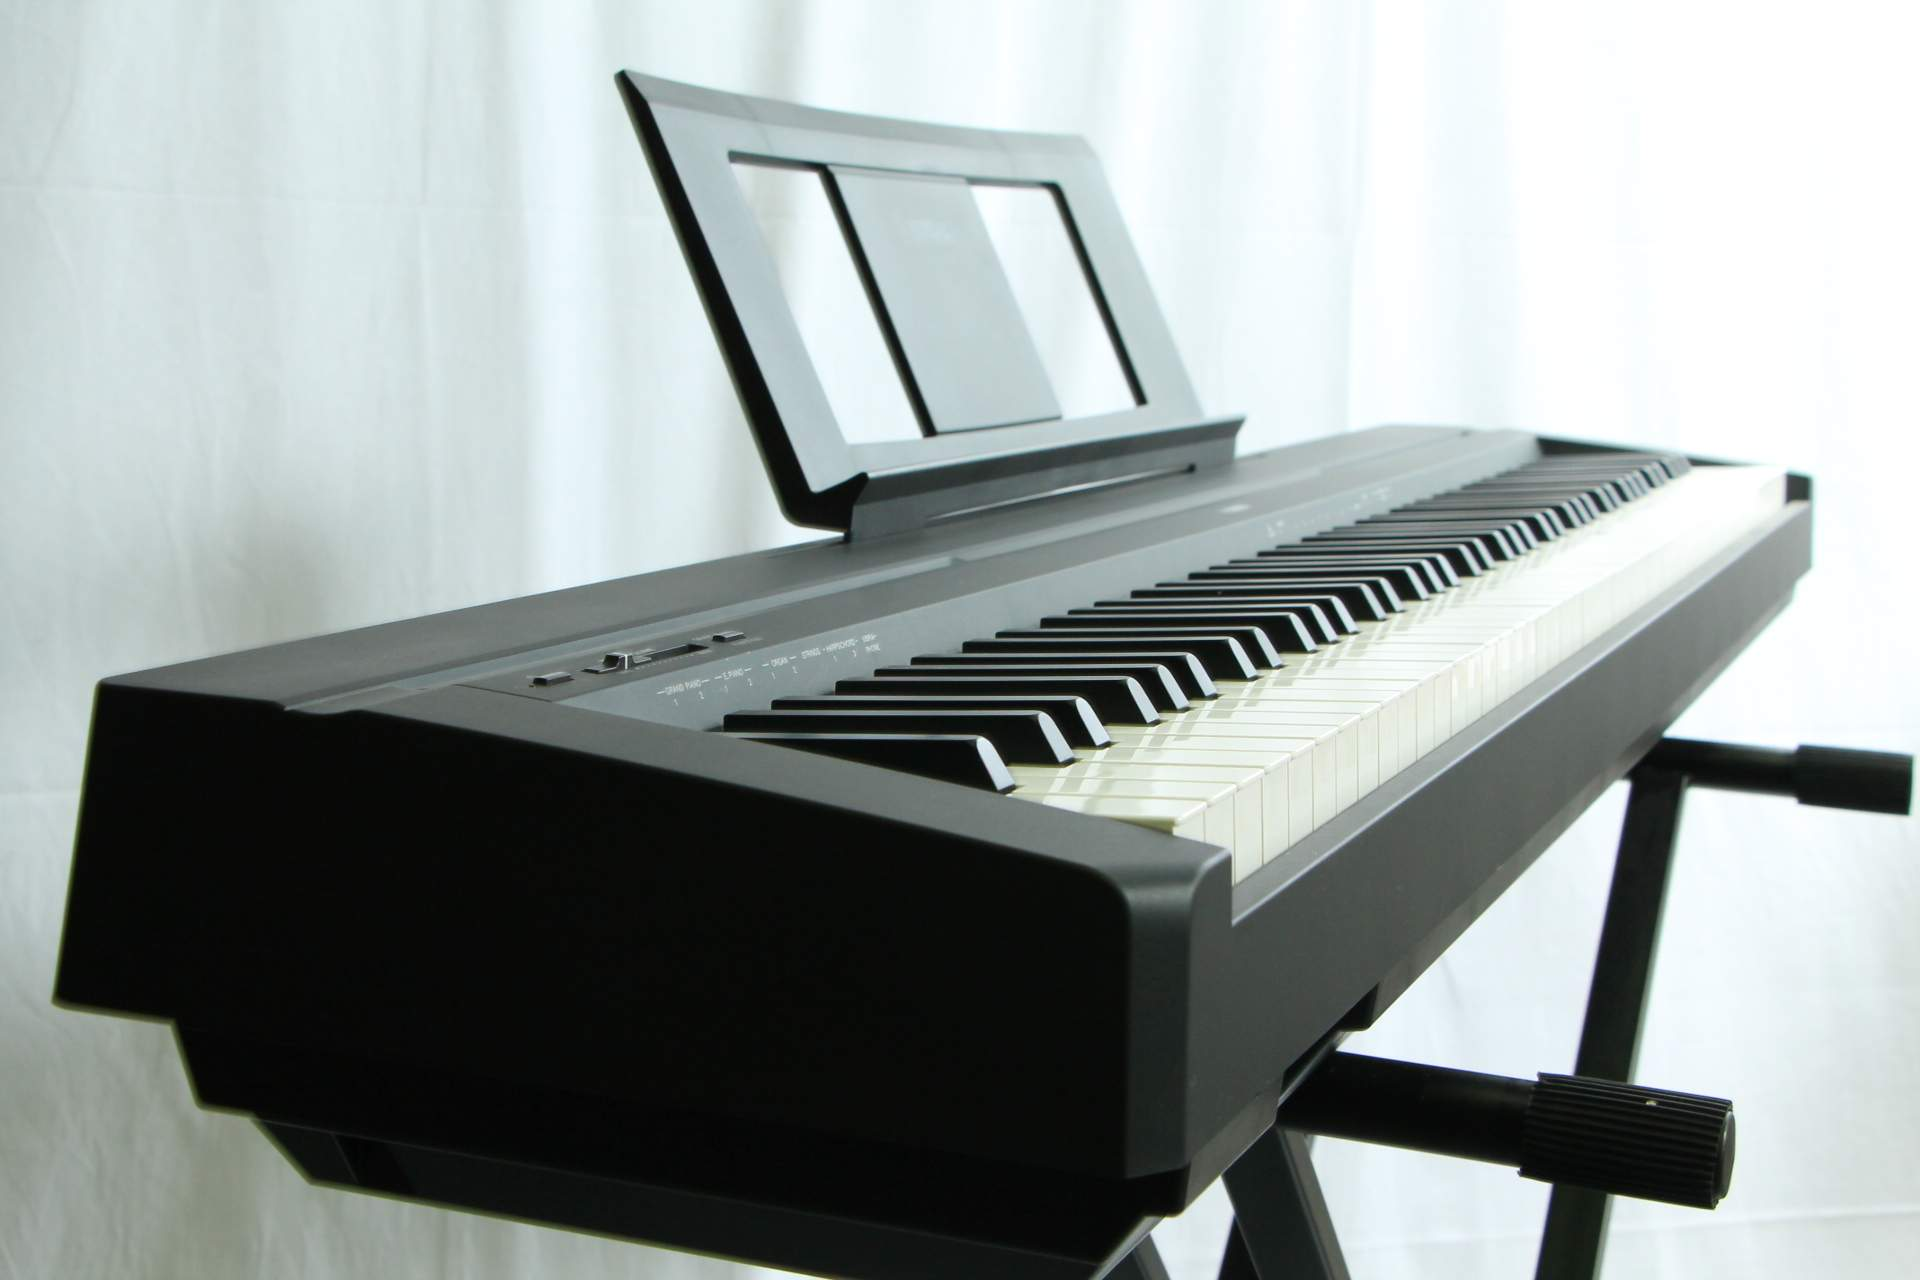 yamaha p45b rent from 21 month musicorp australia. Black Bedroom Furniture Sets. Home Design Ideas